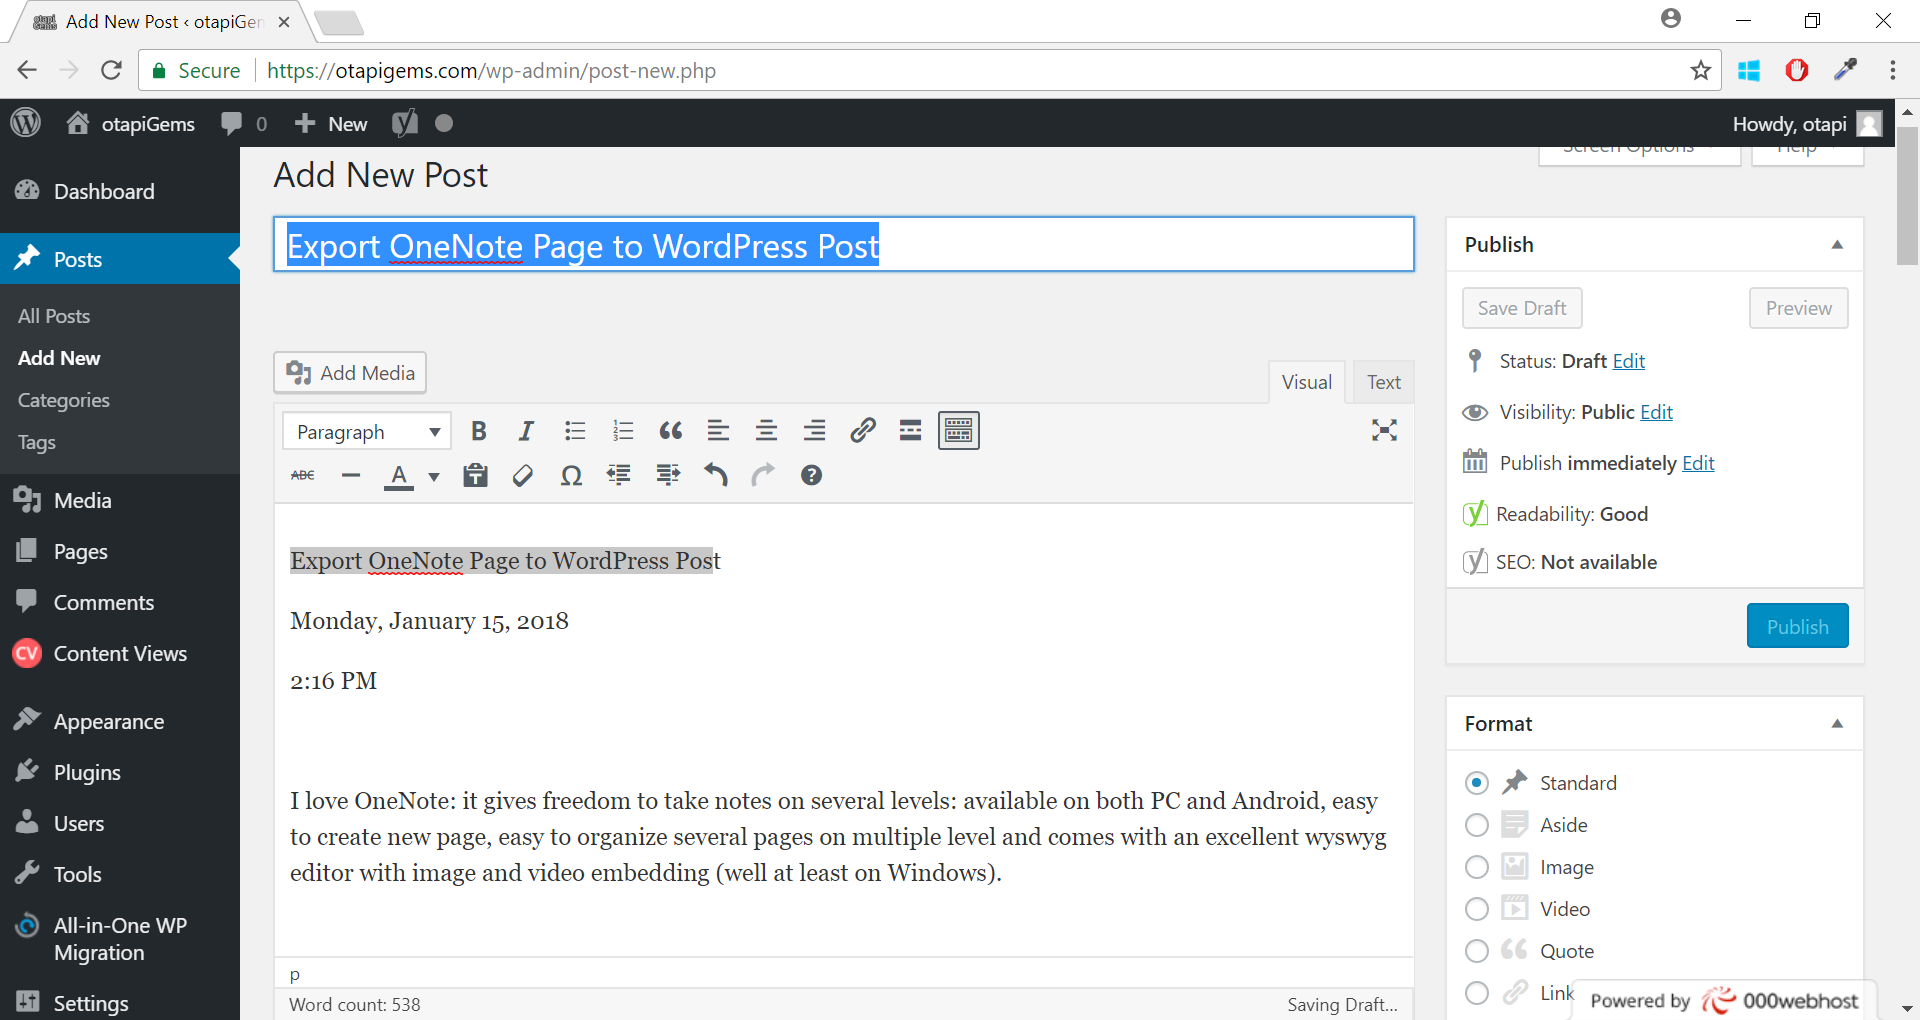 Export OneNote Page to WordPress Post - Barnabás Nagy - Medium